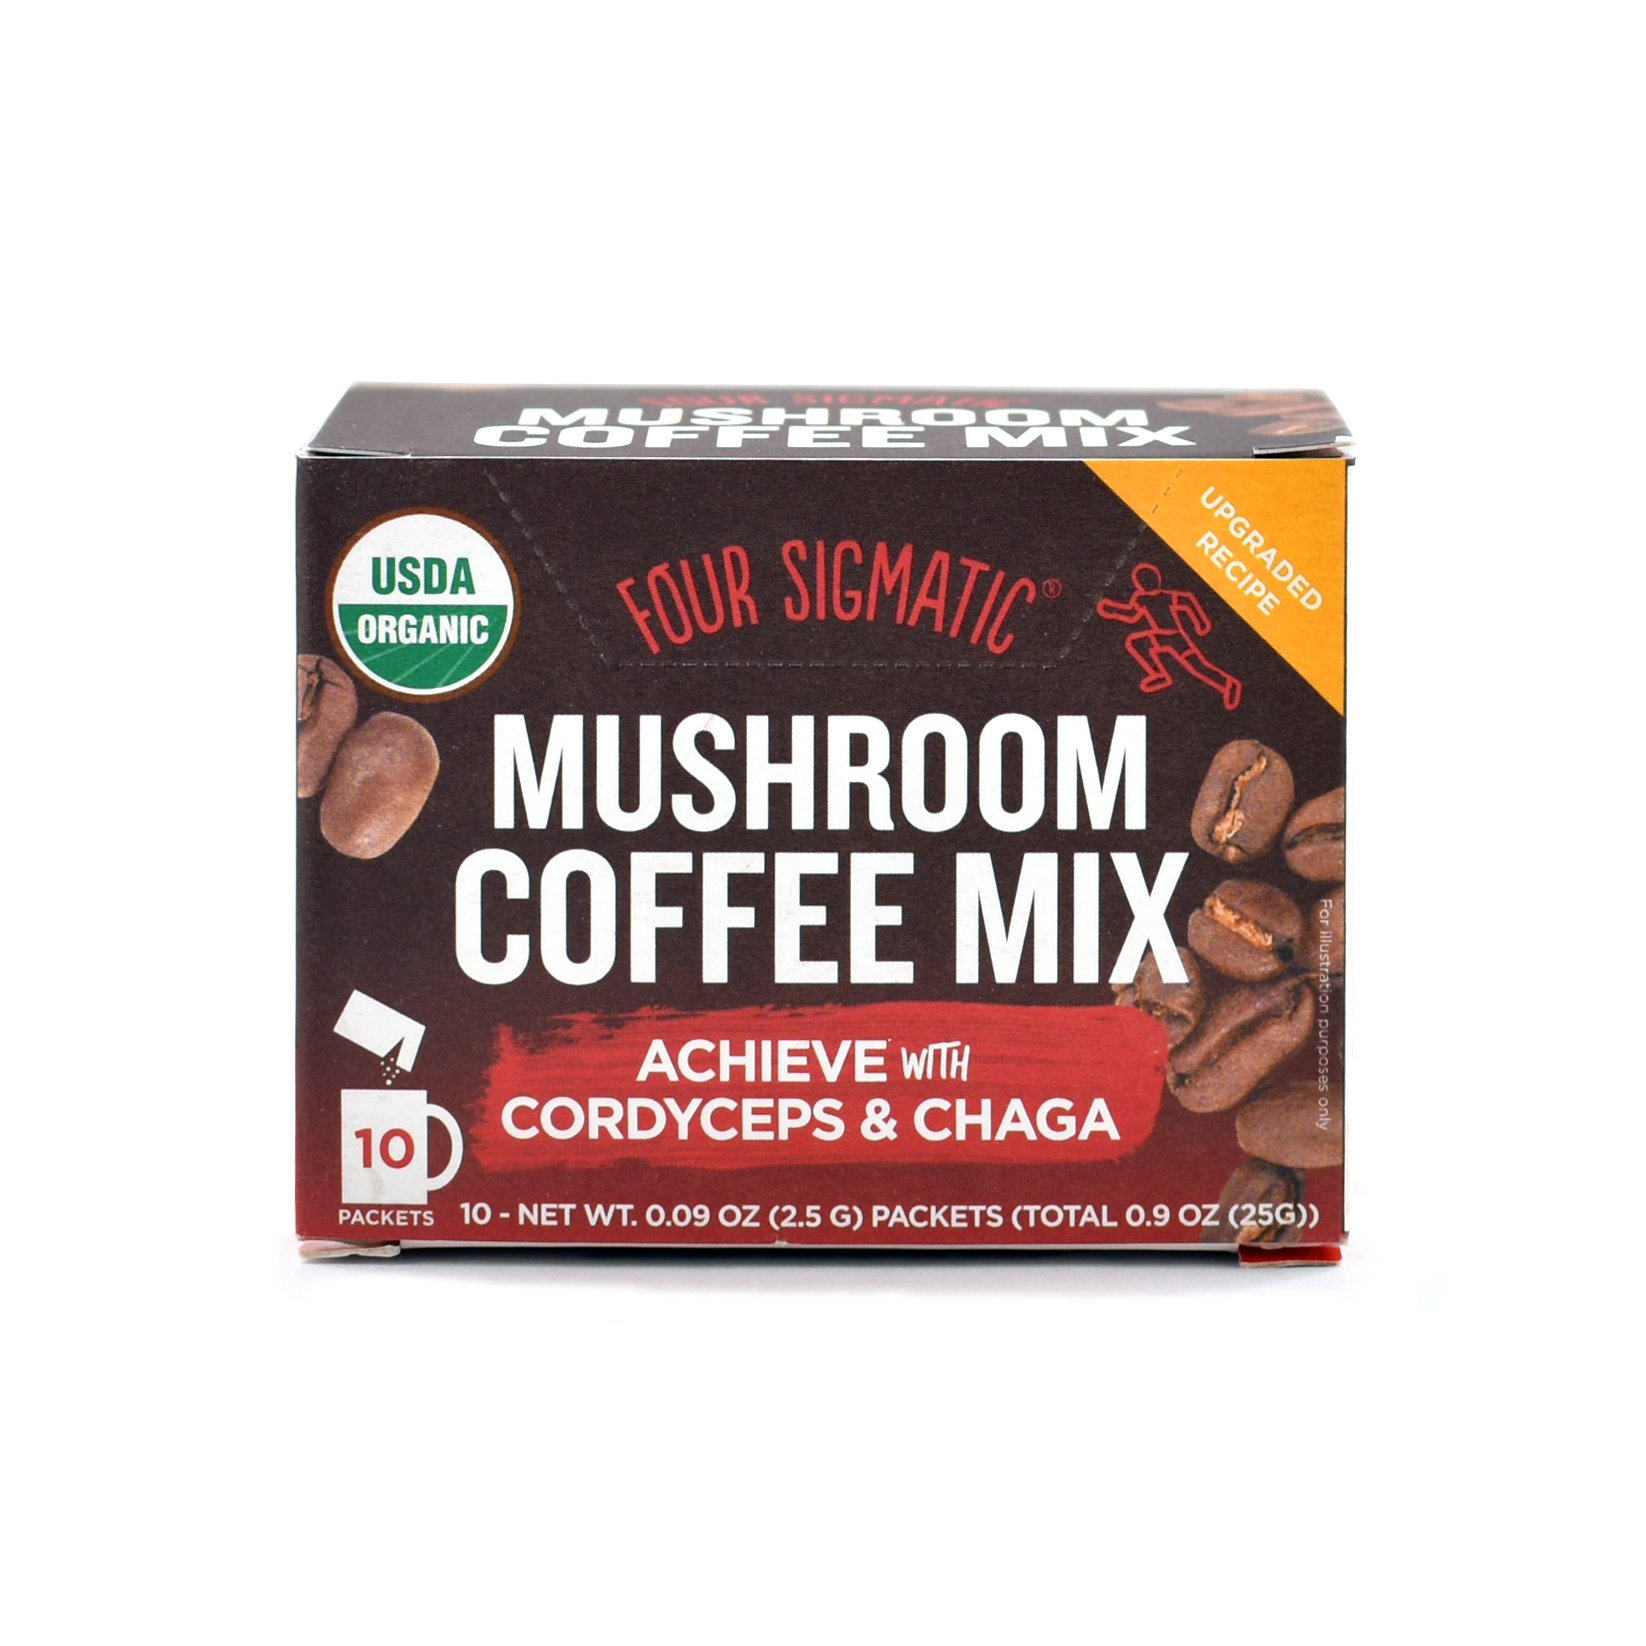 Four Sigmatic Mushroom Coffee Mix Pack of 2 - Lion's Mane and Chaga & Cordyceps and Chaga by Four Sigmatic (Image #4)